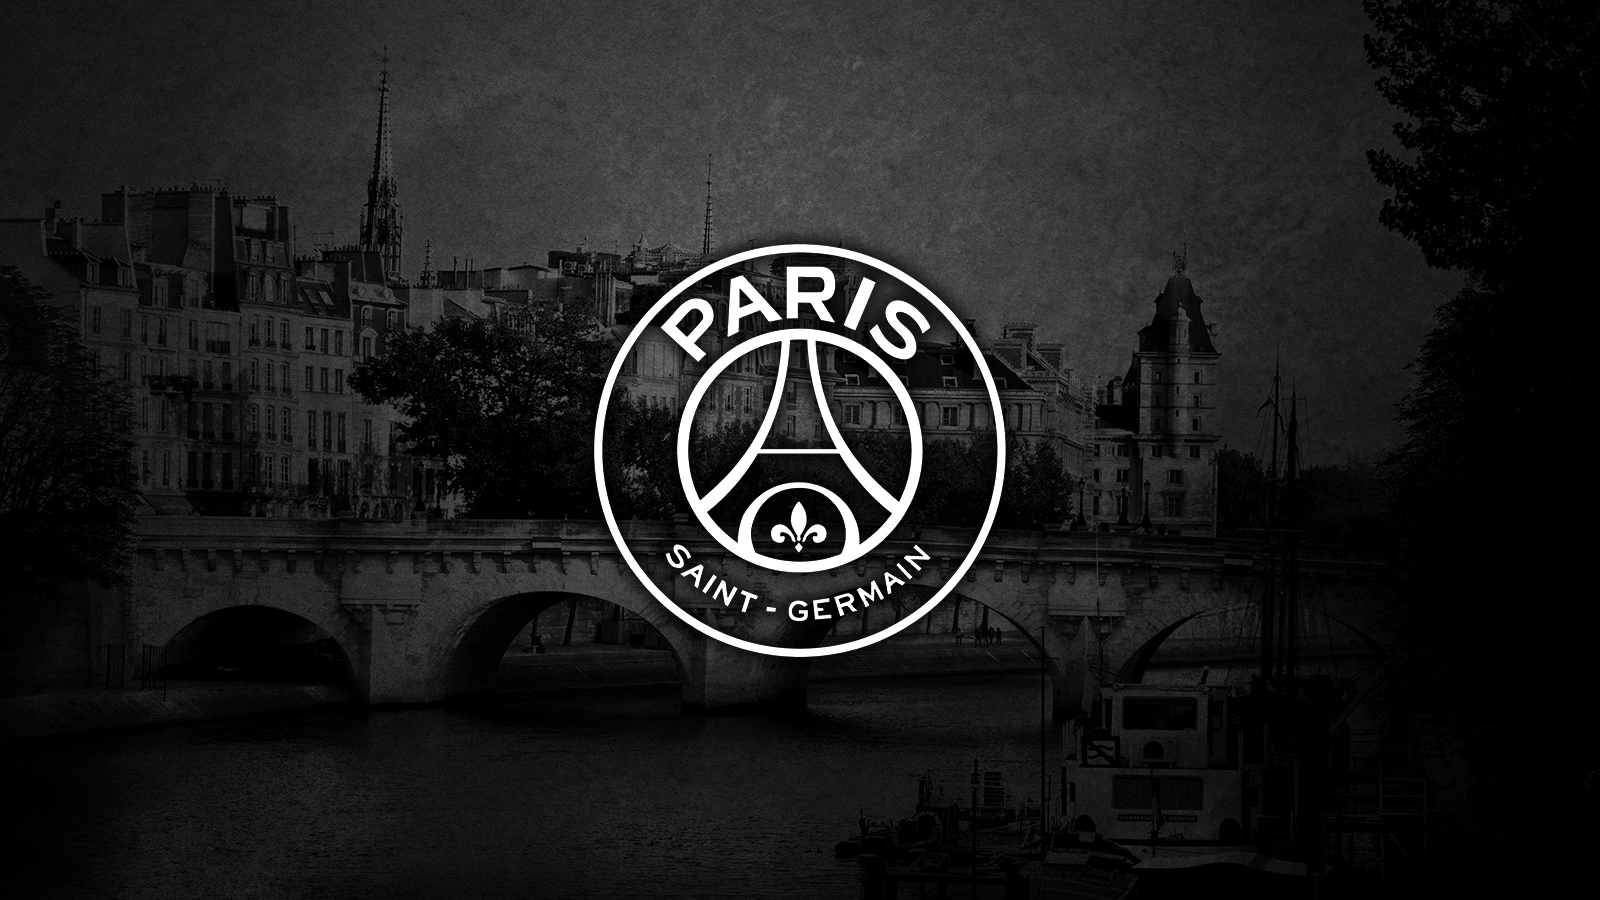 50 Psg Wallpaper Hd On Wallpapersafari